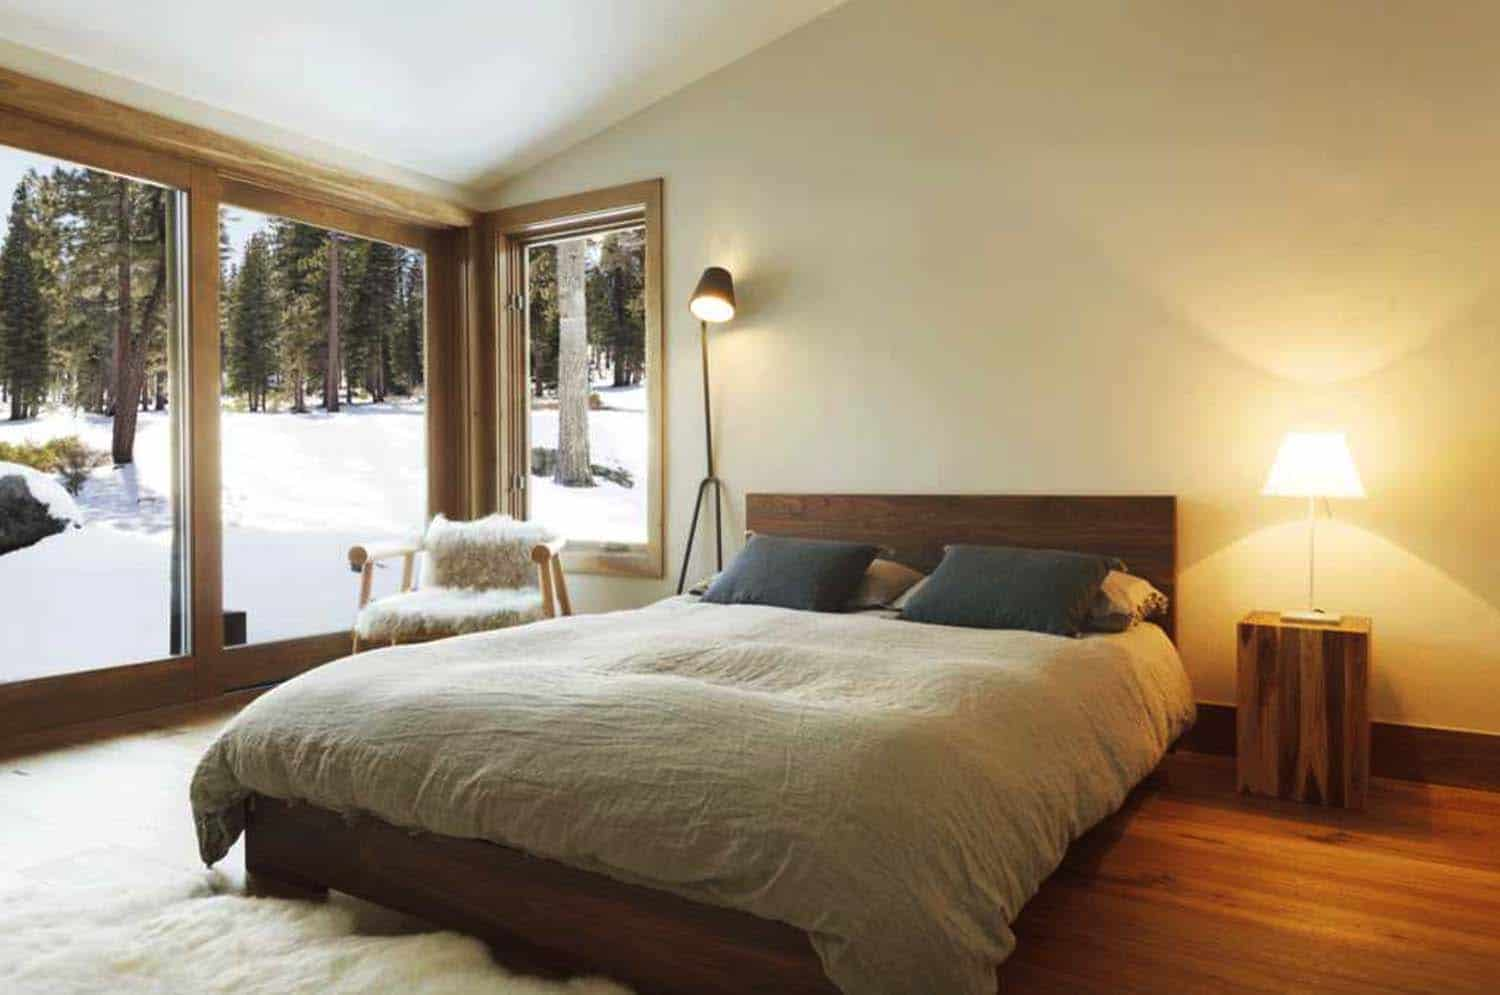 Amazing Cozy-Rustic Bedrooms-24-1 Kindesign